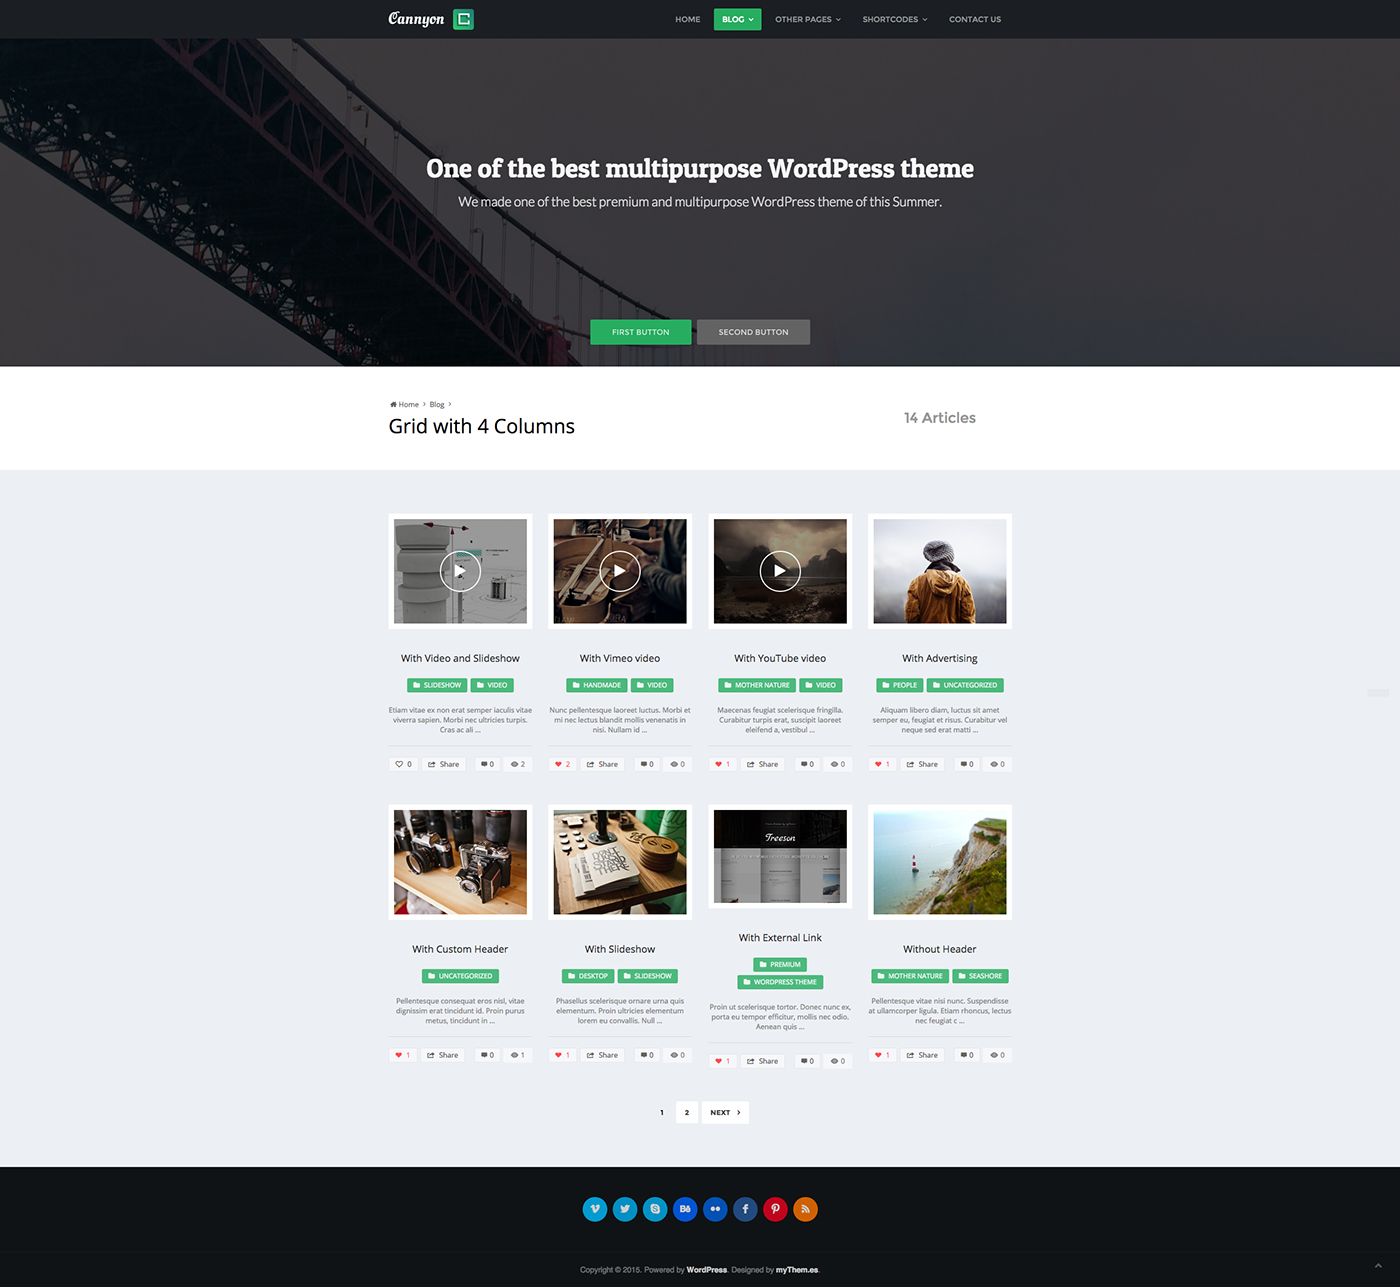 bootstrap CSS 3 custom footer Custom Front Page custom header Custom Posts disqus comments facebook comments HTML 5 Custom Layouts video thumbnail Header Video